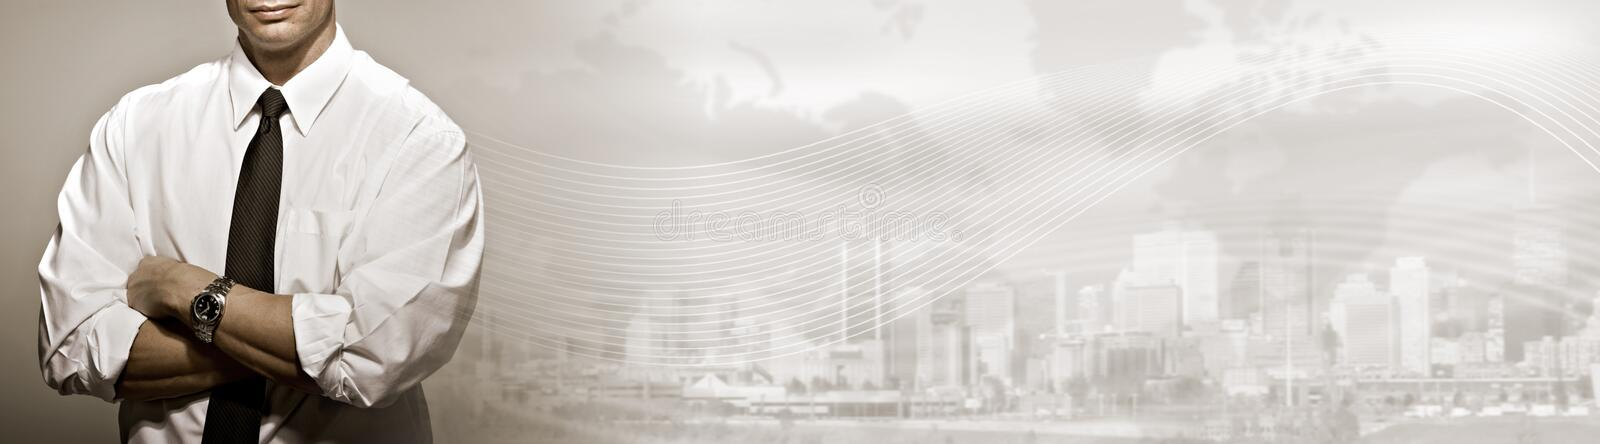 Business background. Successful businessman financial bank agent over abstract business background stock photo